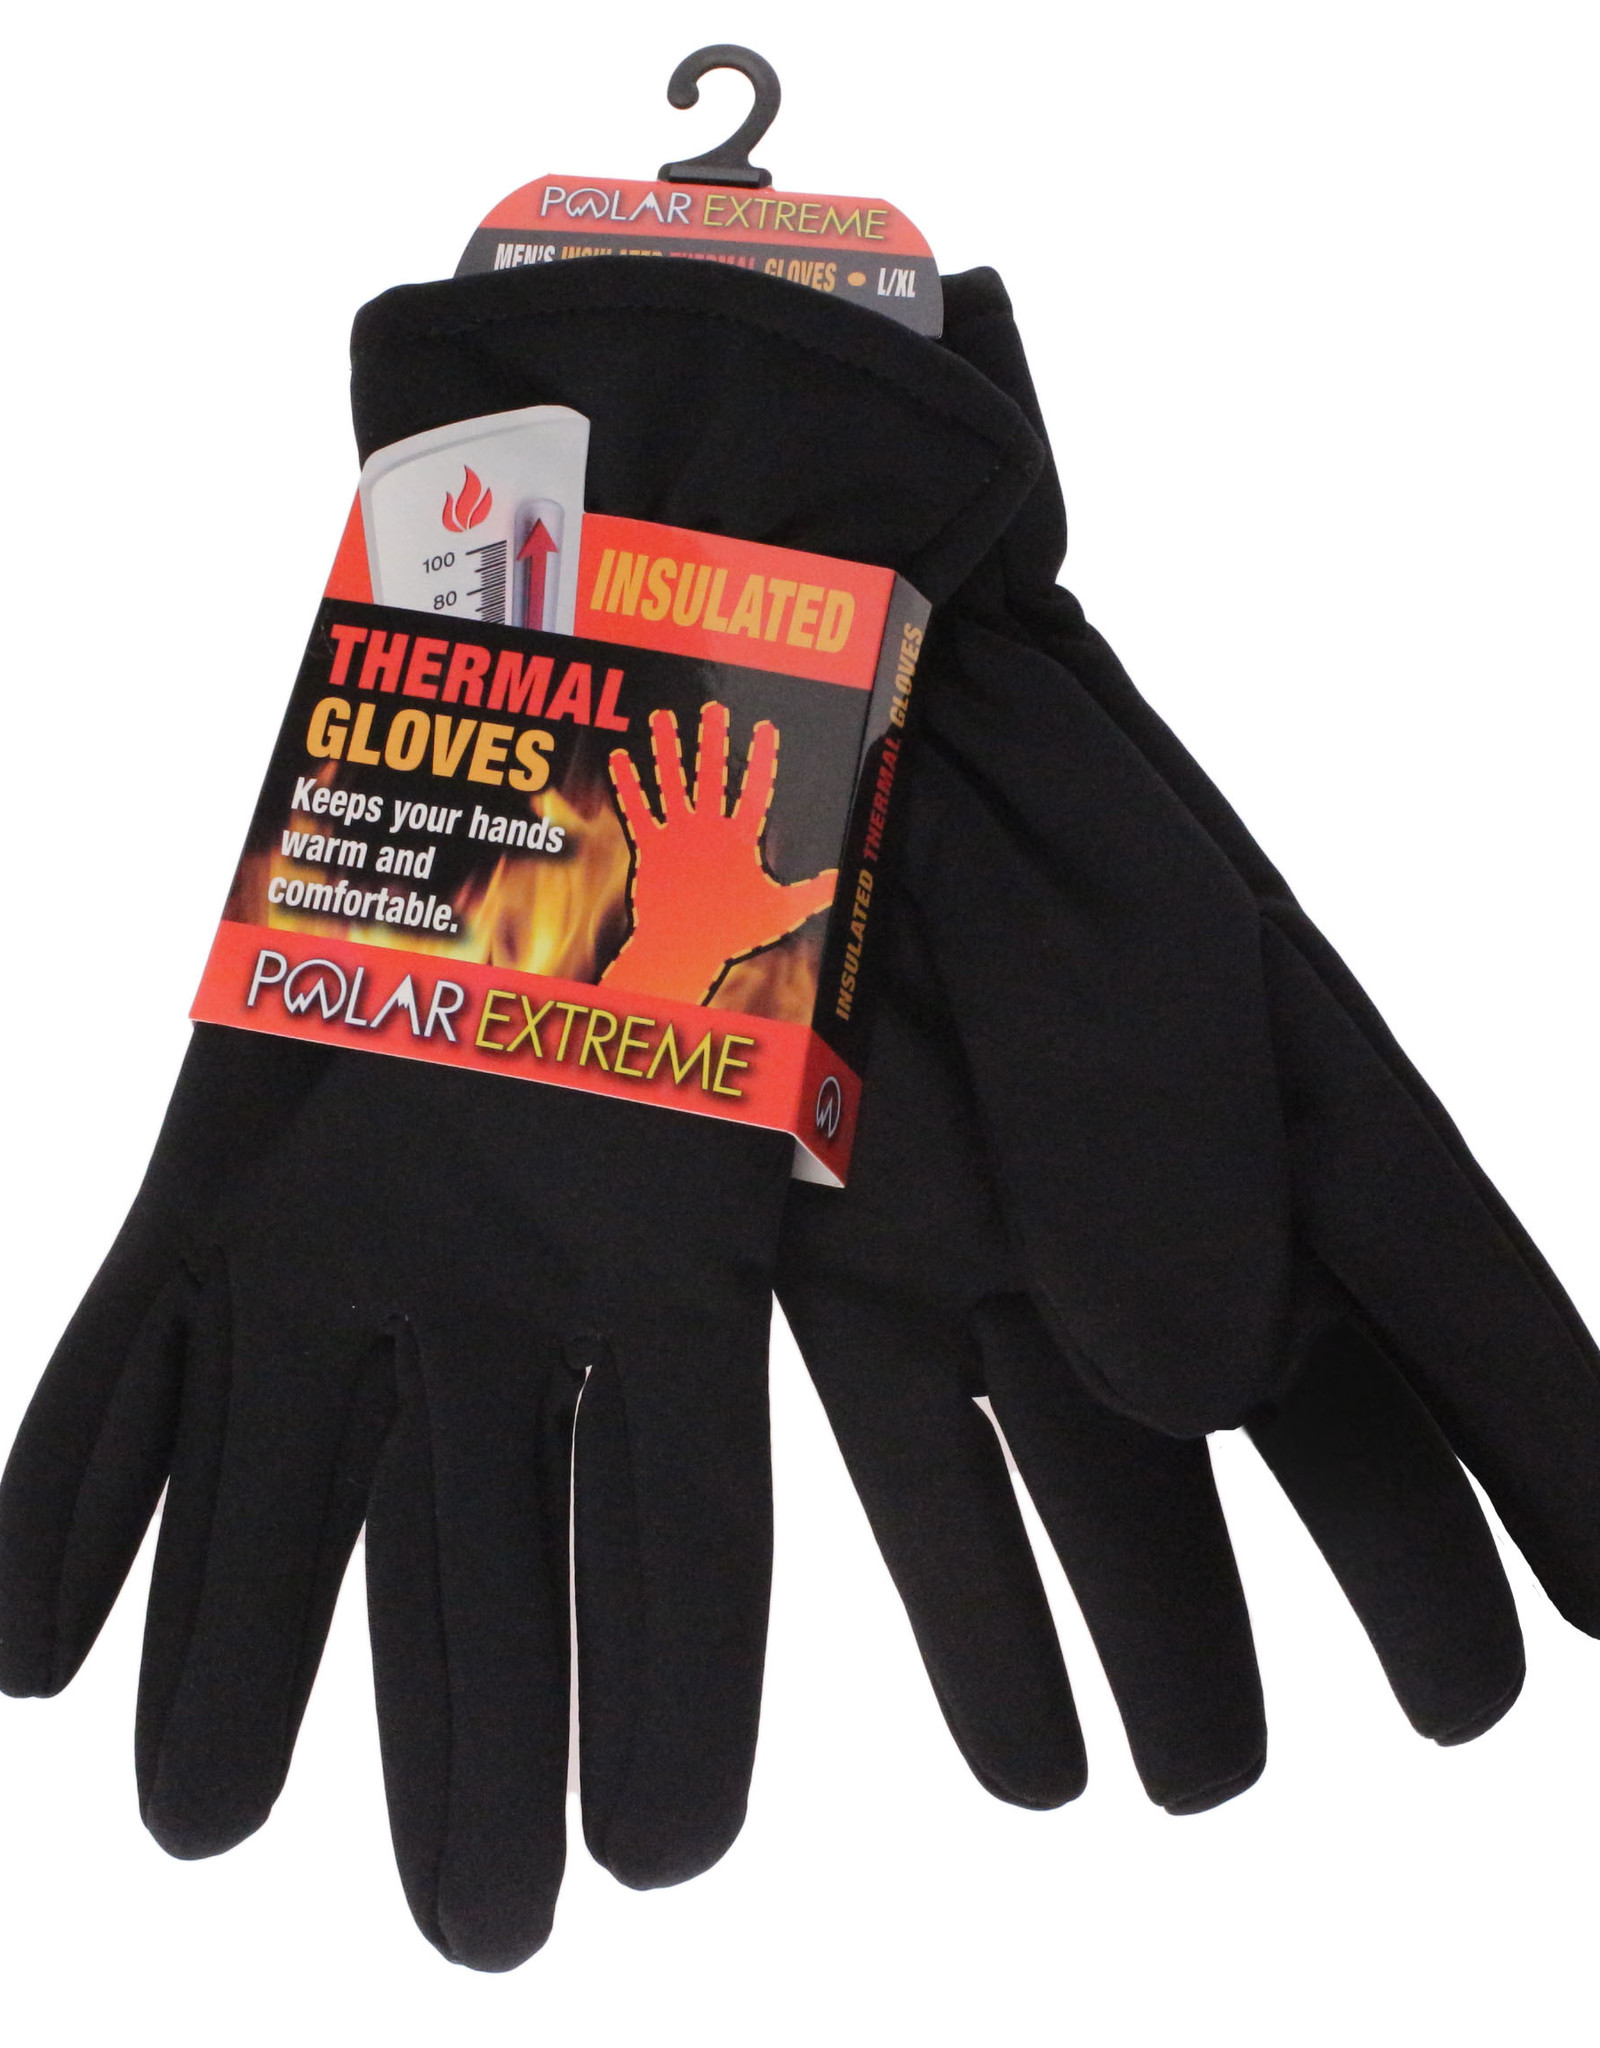 GOLD MEDAL Men's Thermal Gloves